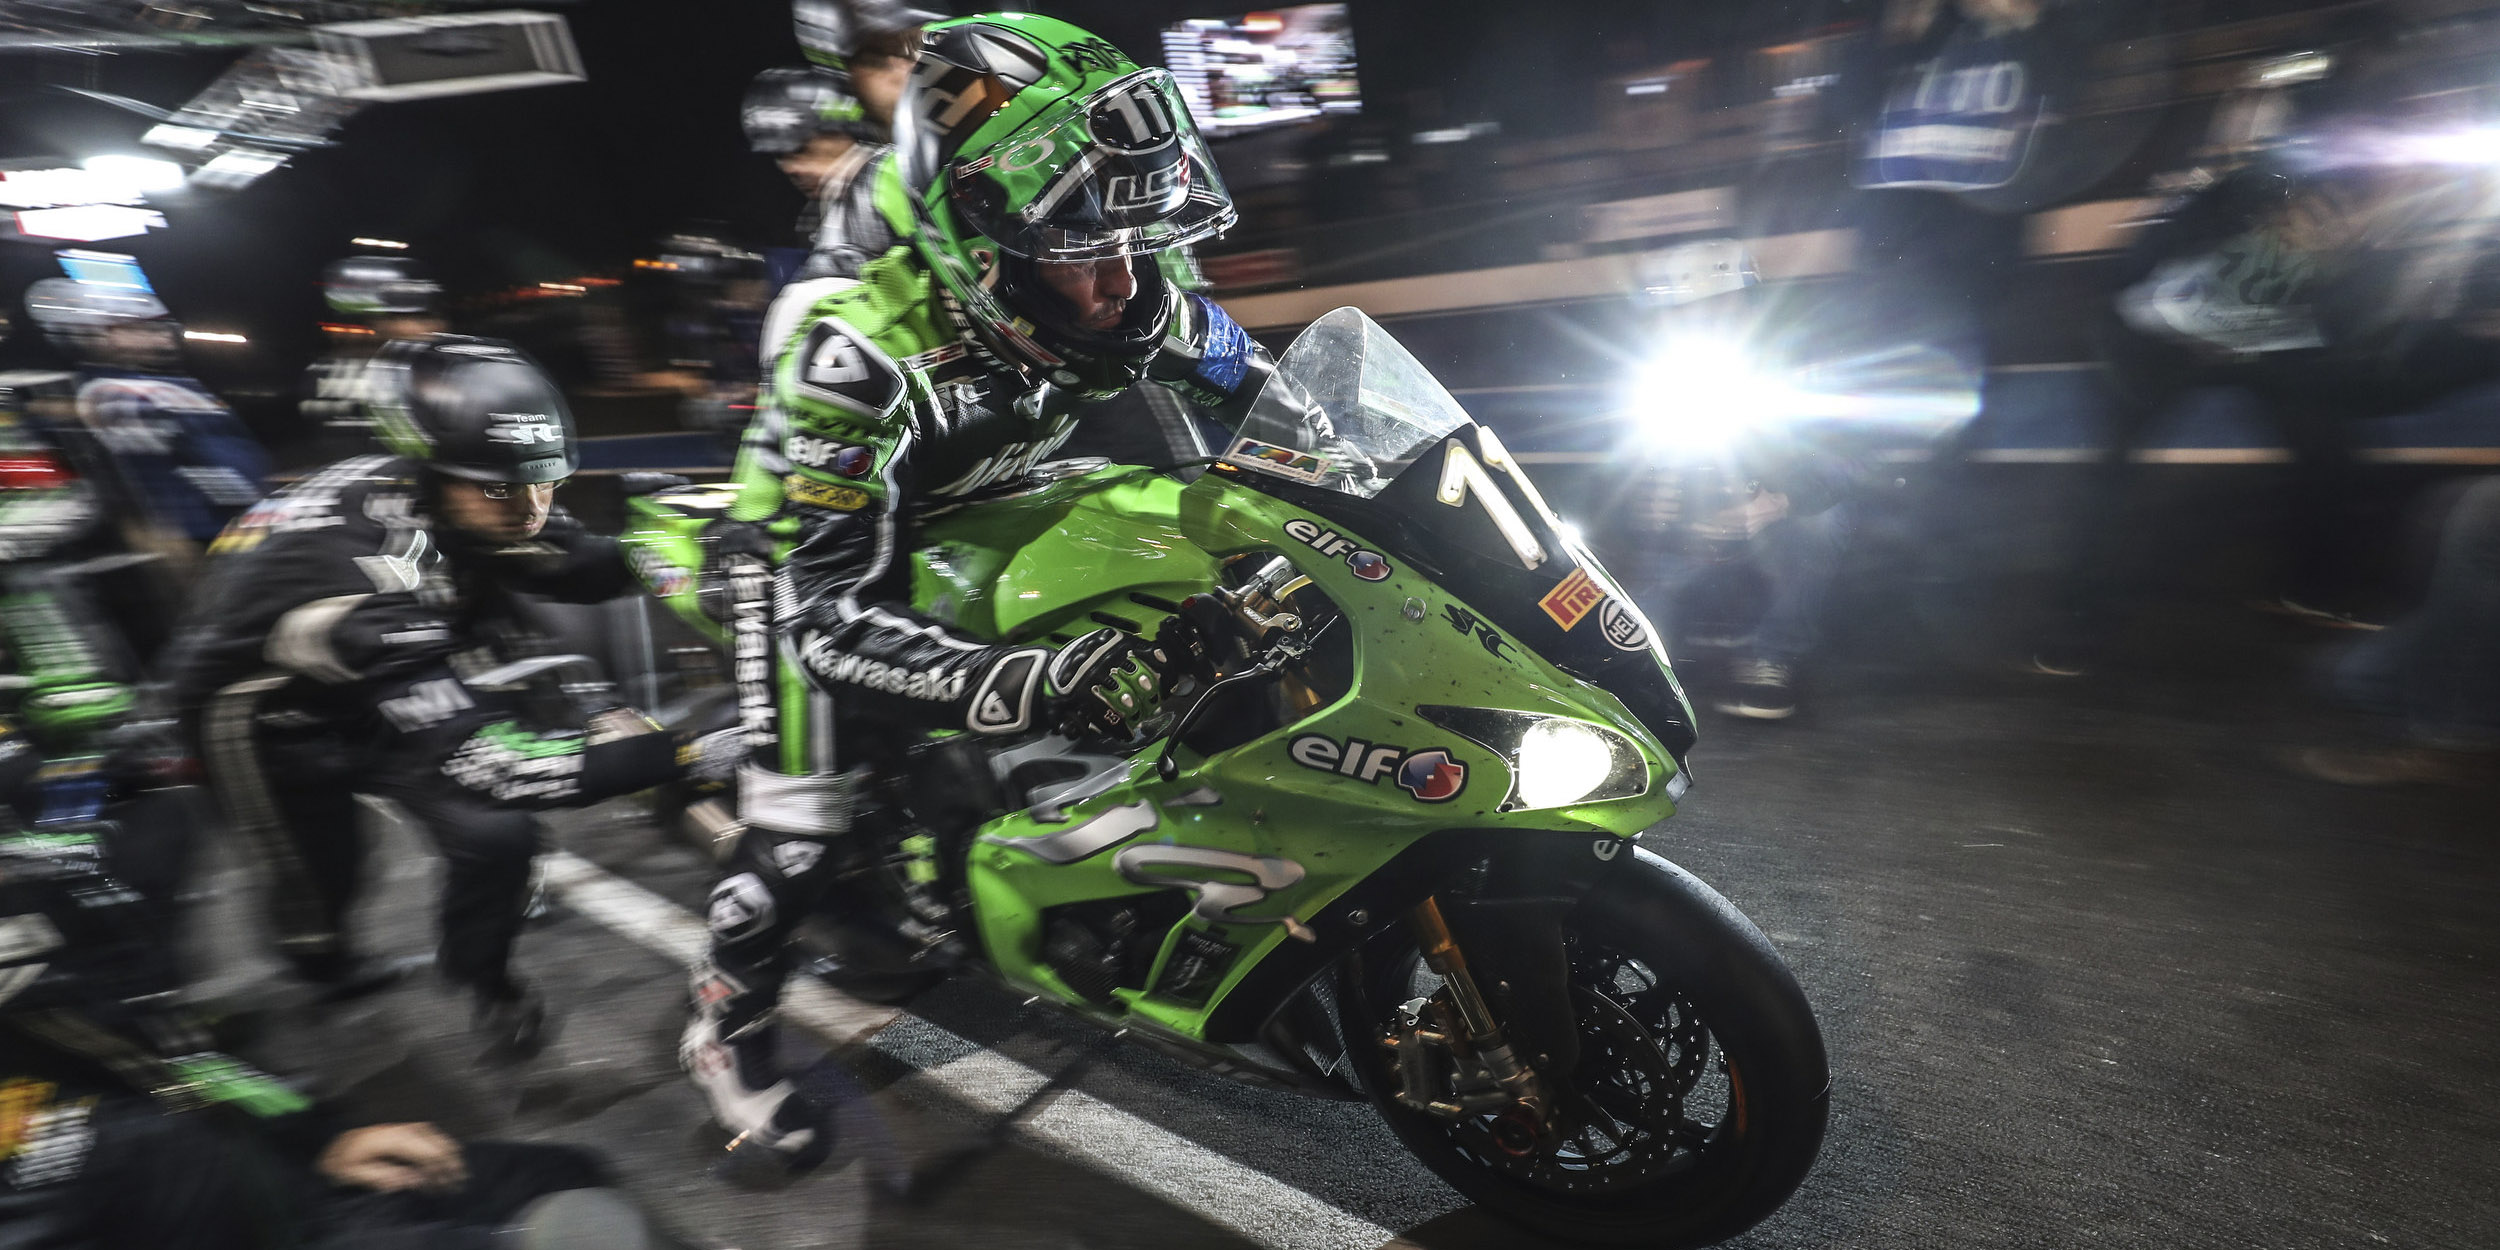 A new ZX-10RR for Team SRC Kawasaki France